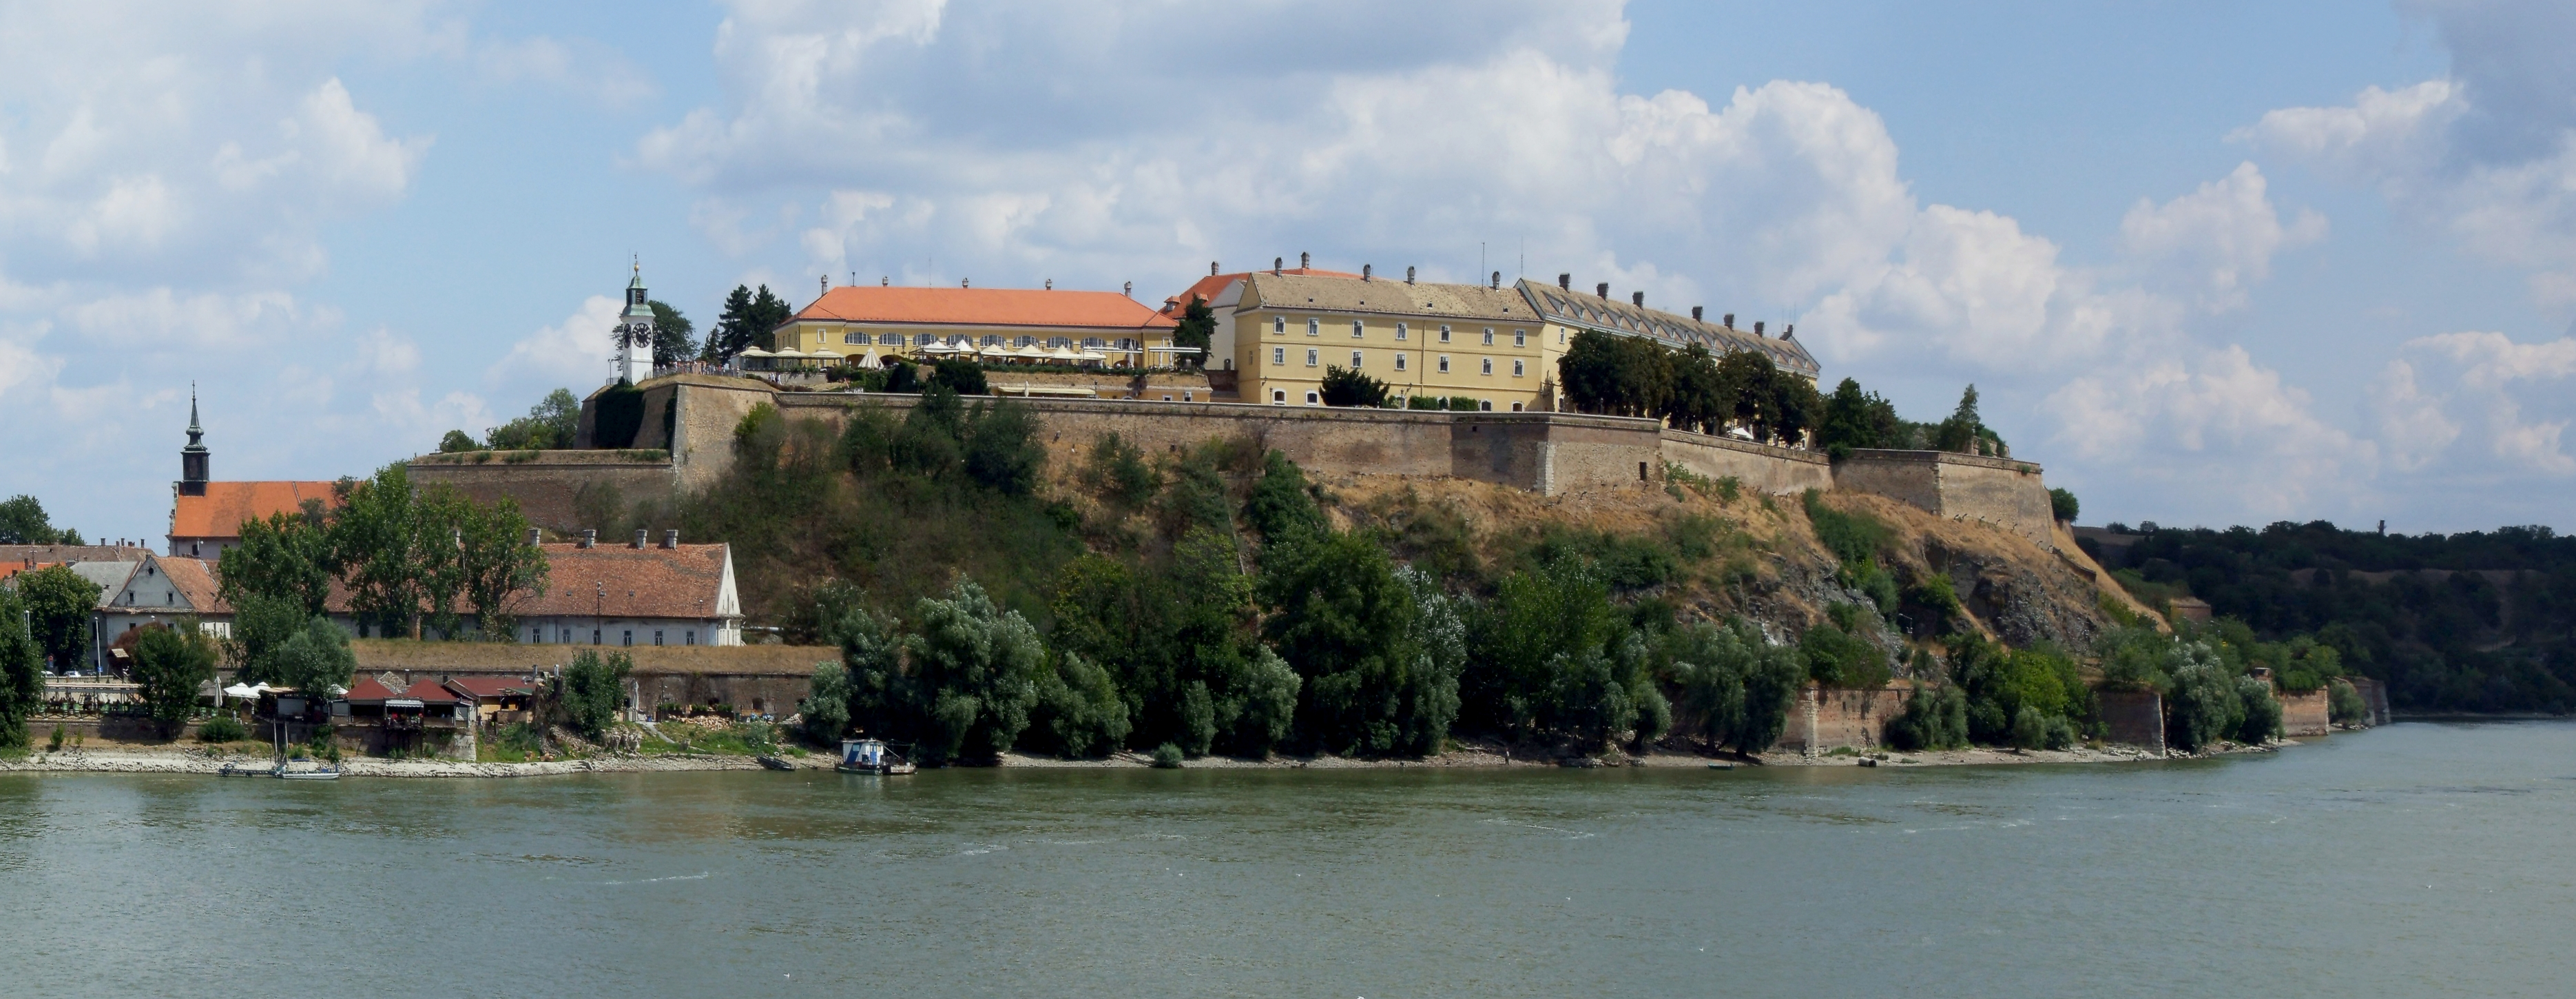 Petrovaradin Serbia  City pictures : Description Petrovaradin Fortress Péterváradi vár, Peterwardein ...